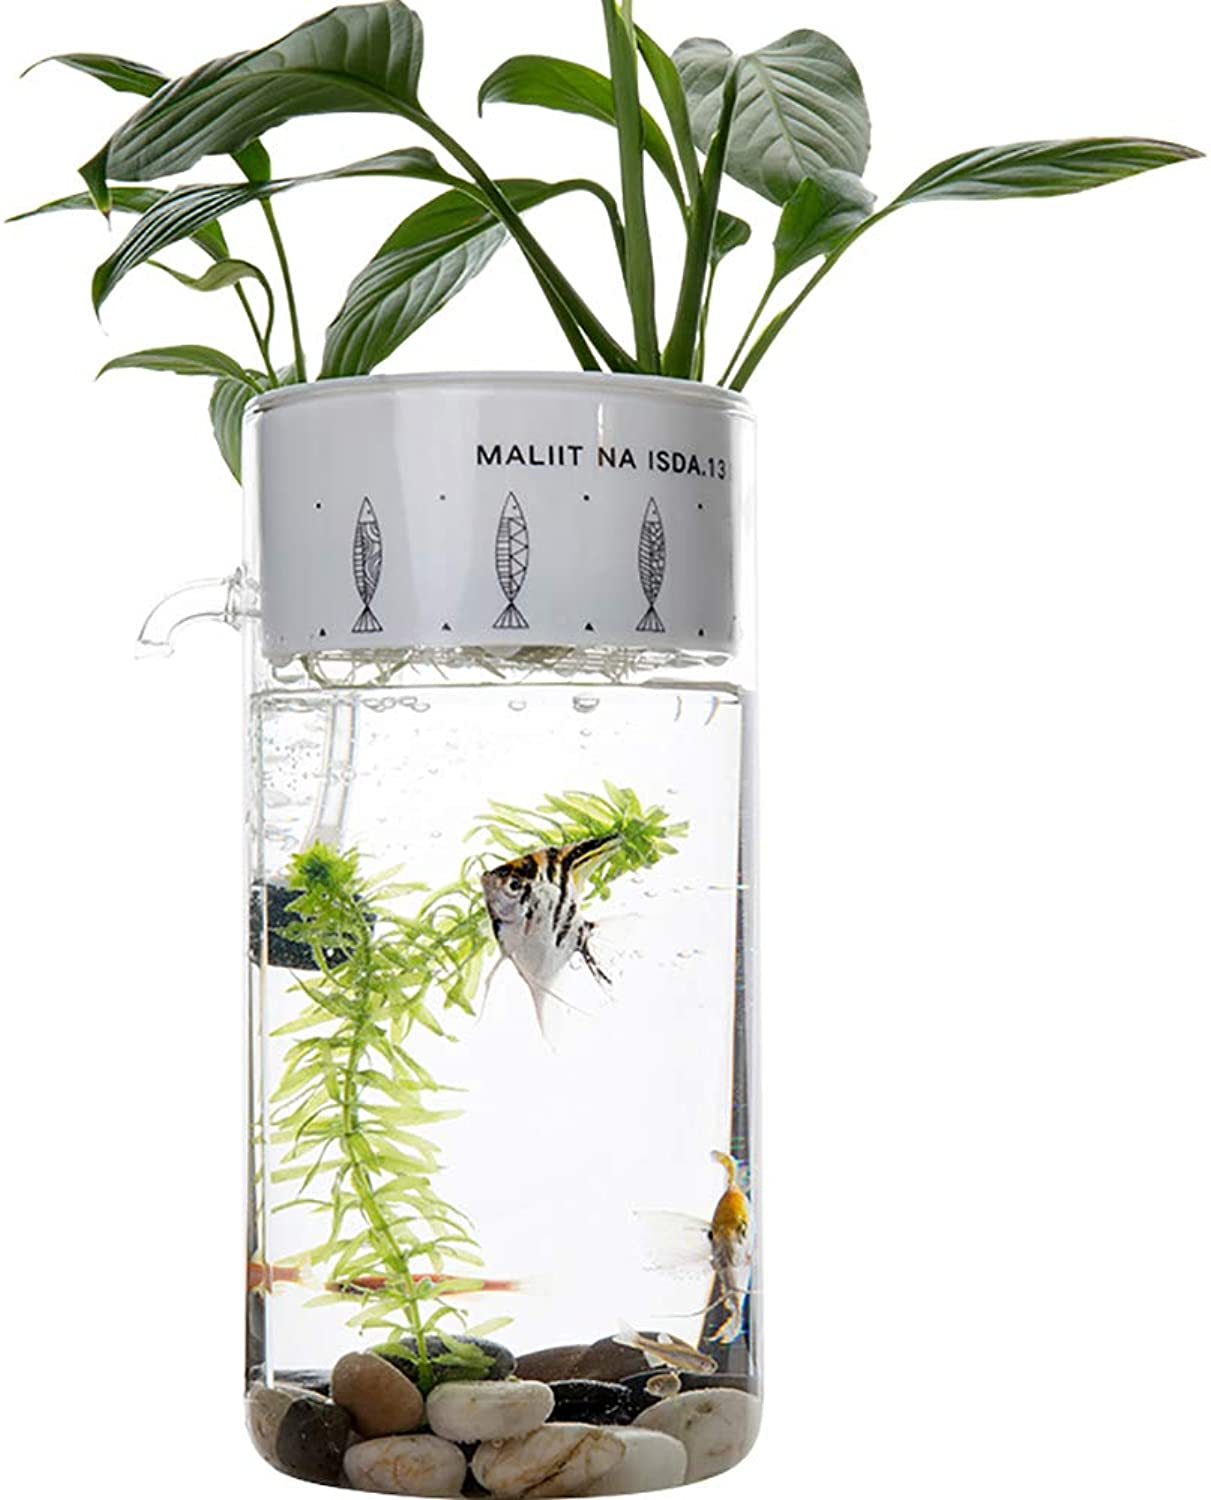 Aquariums, Creative Waterfree Fish Tanks Small Selfcleaning Ecological Office Desktop Mini Glass Lazy Aquarium